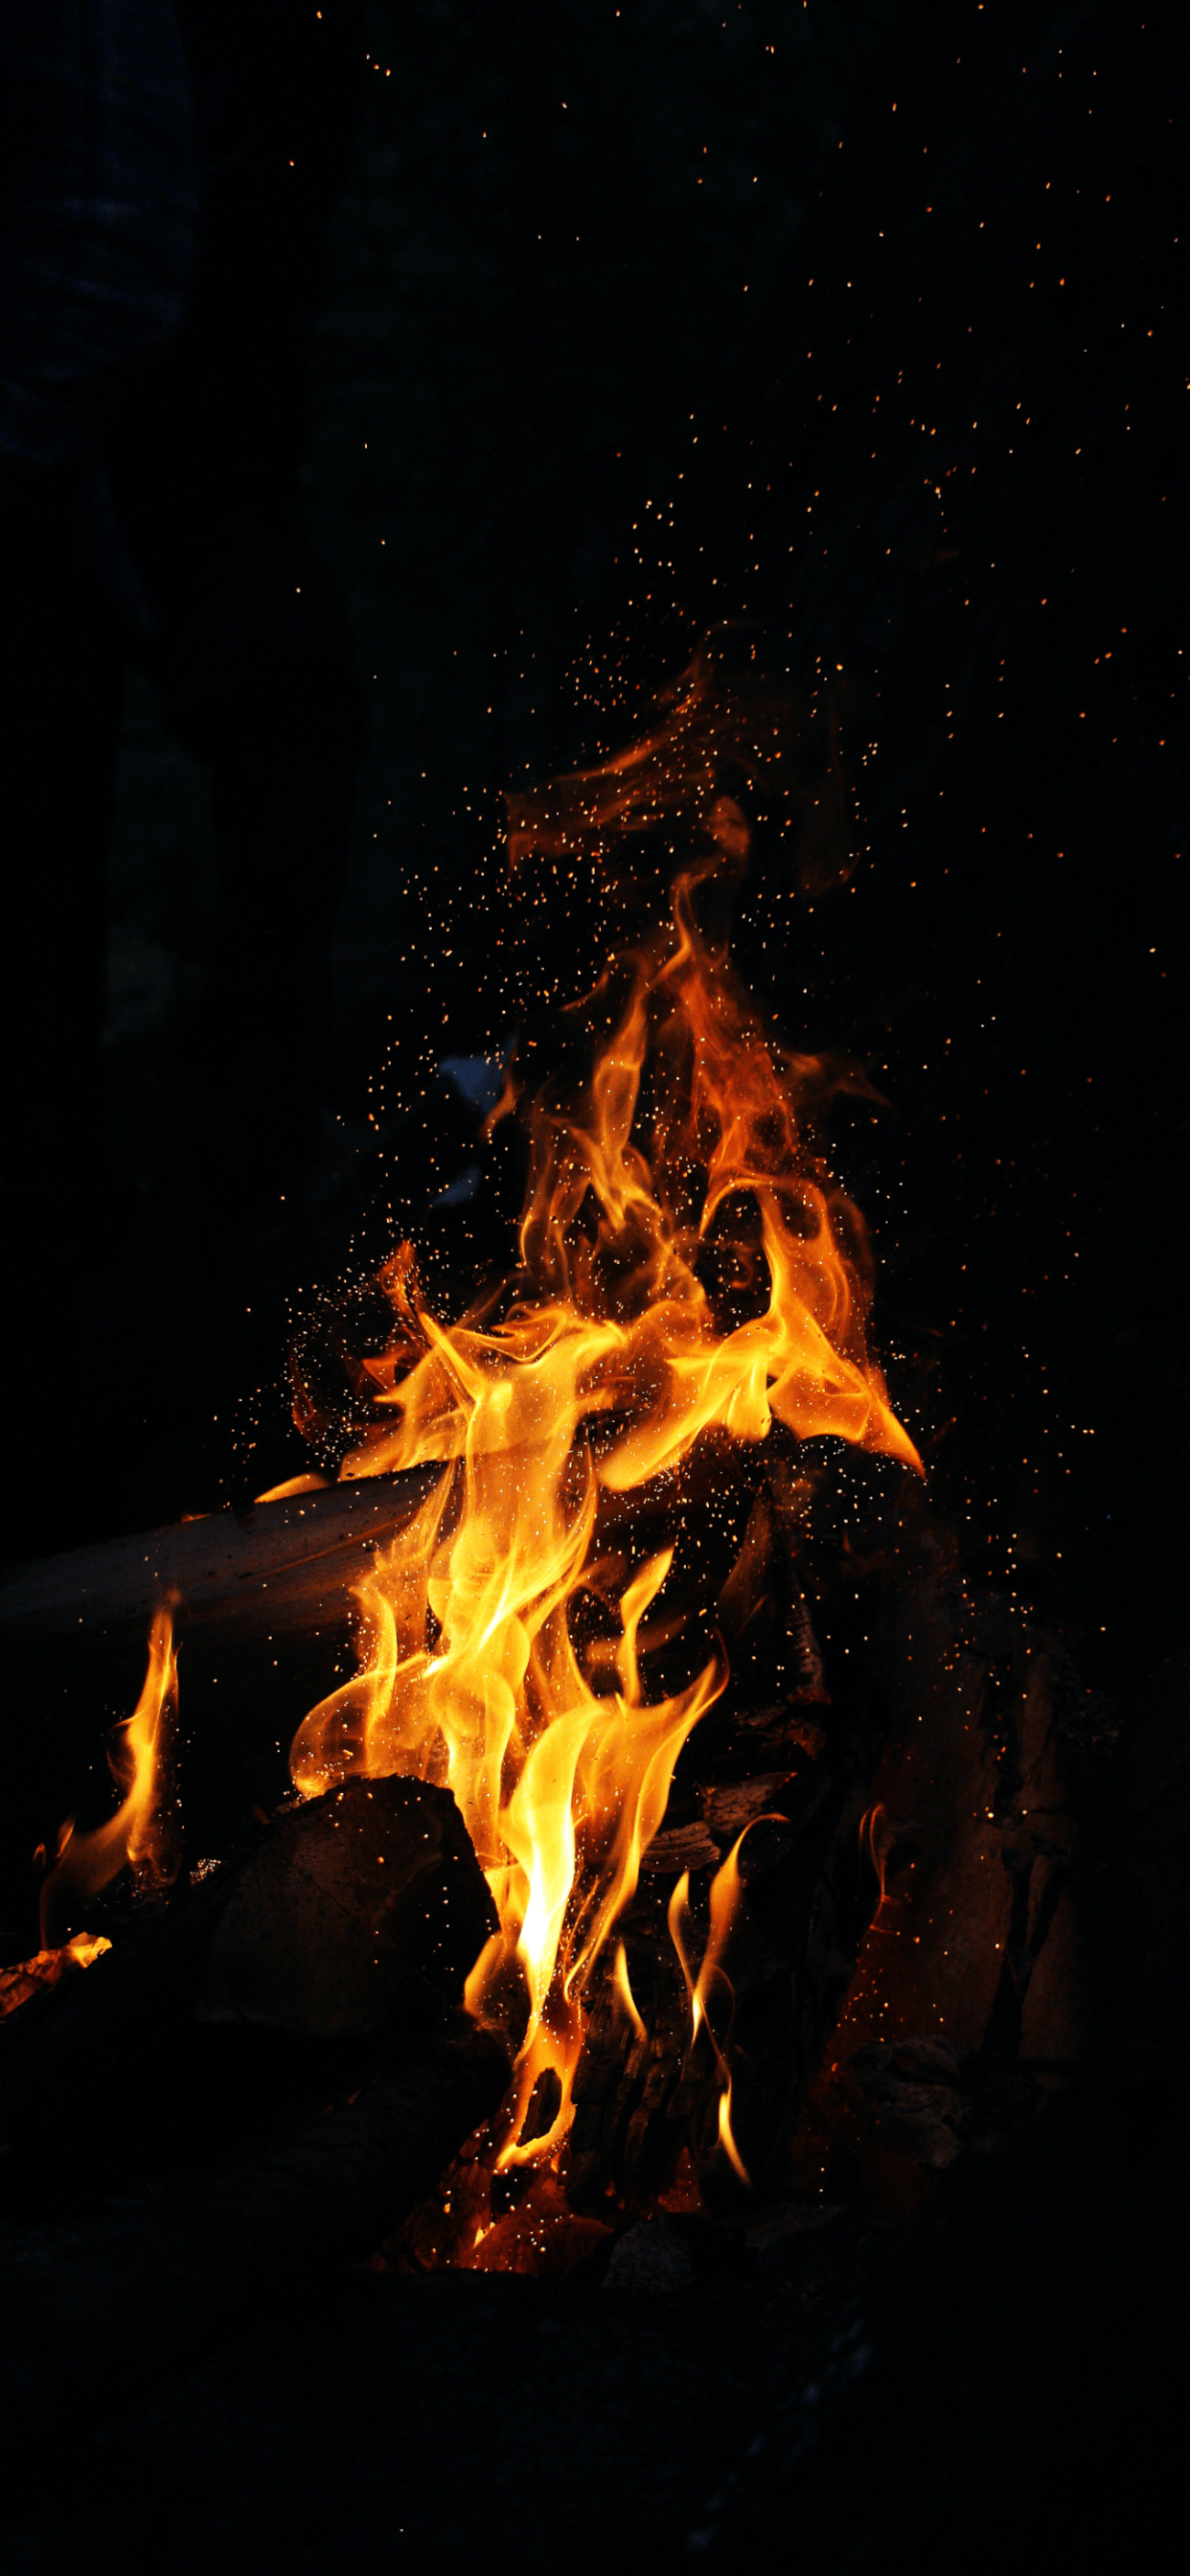 Fire Wallpaper for iPhone 11, Pro Max, X, 8, 7, 6 - Free Download on 3Wallpapers